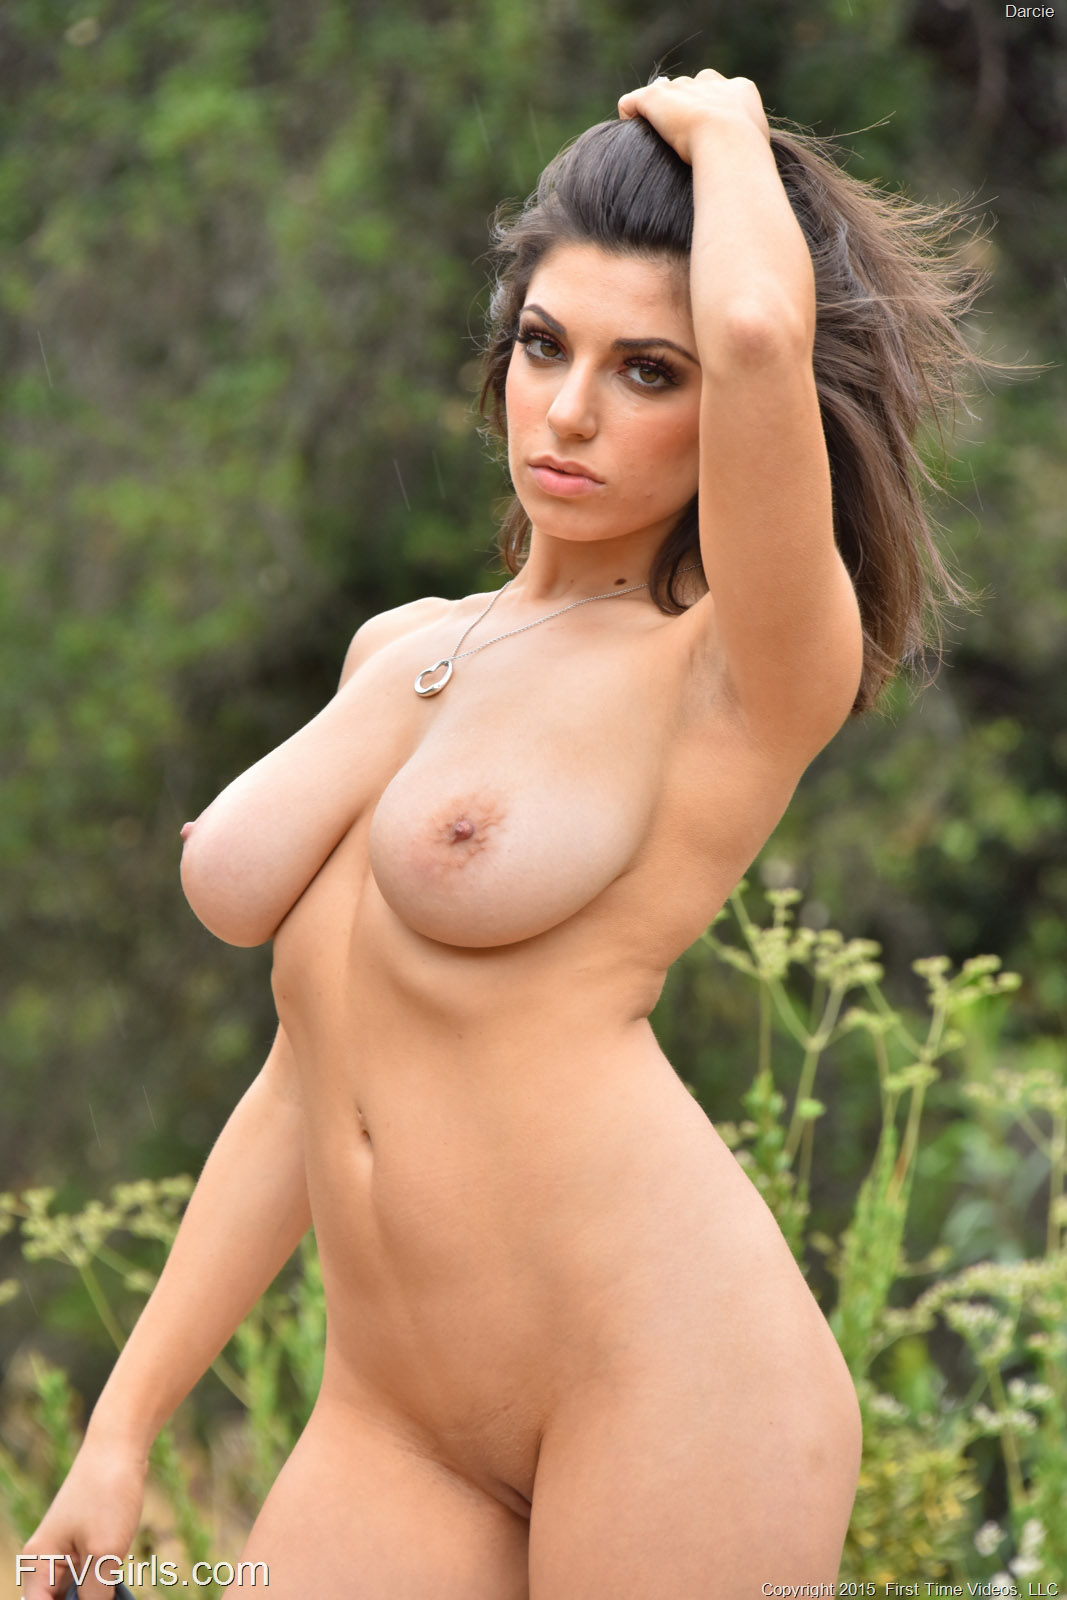 Armenian girl nude, captioned image interracial